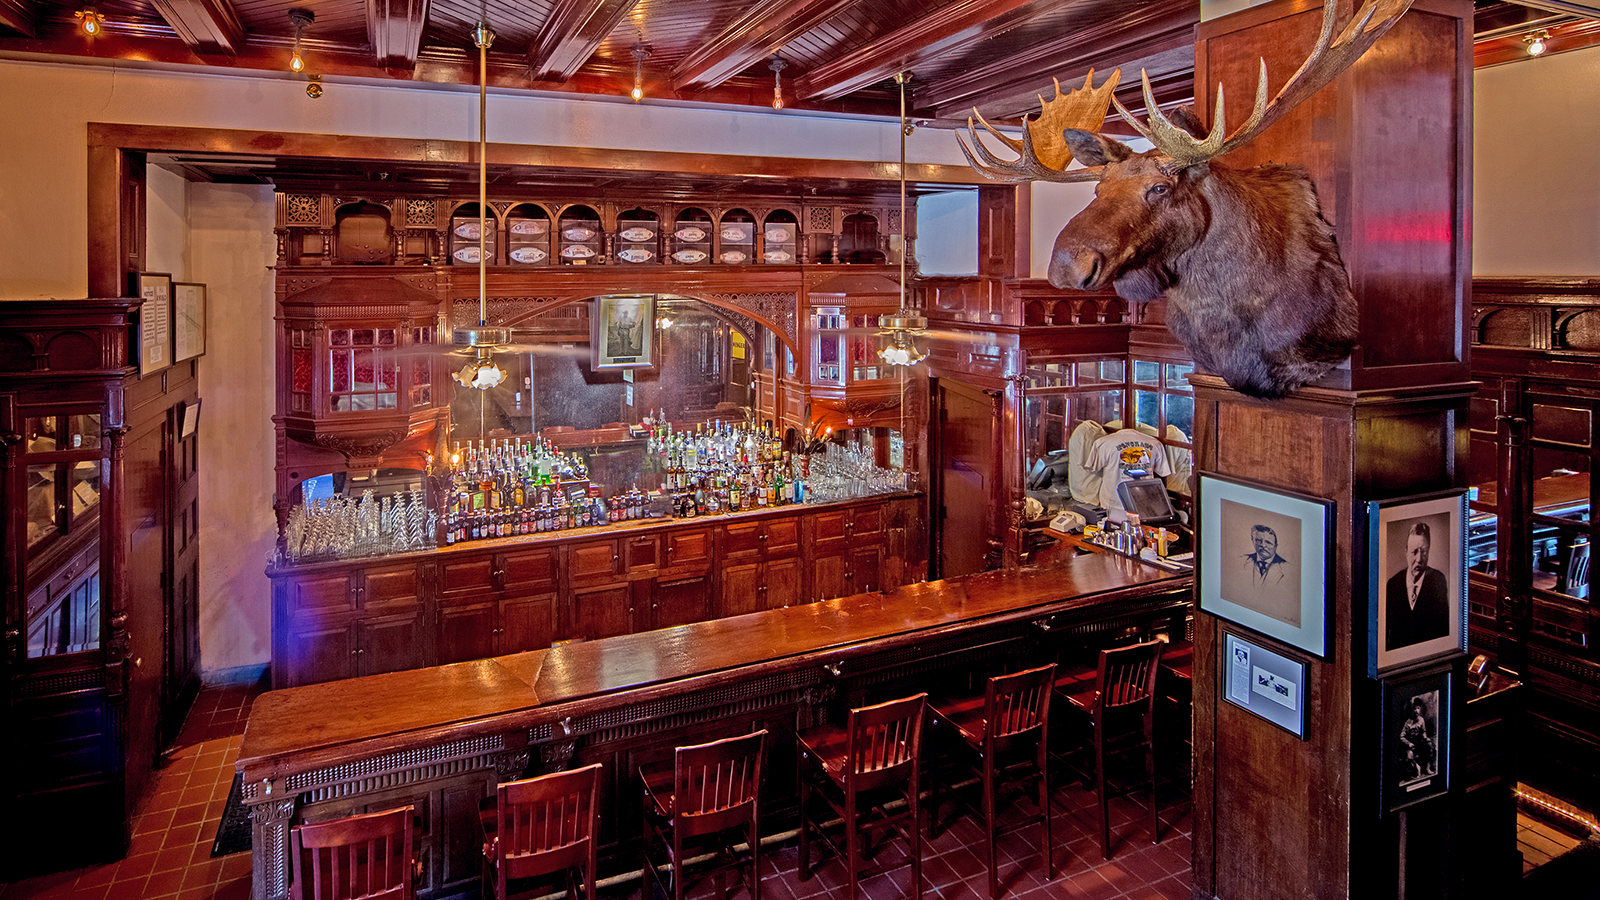 Image of the Menger Bar of the Menger Hotel in San Antonio, Texas